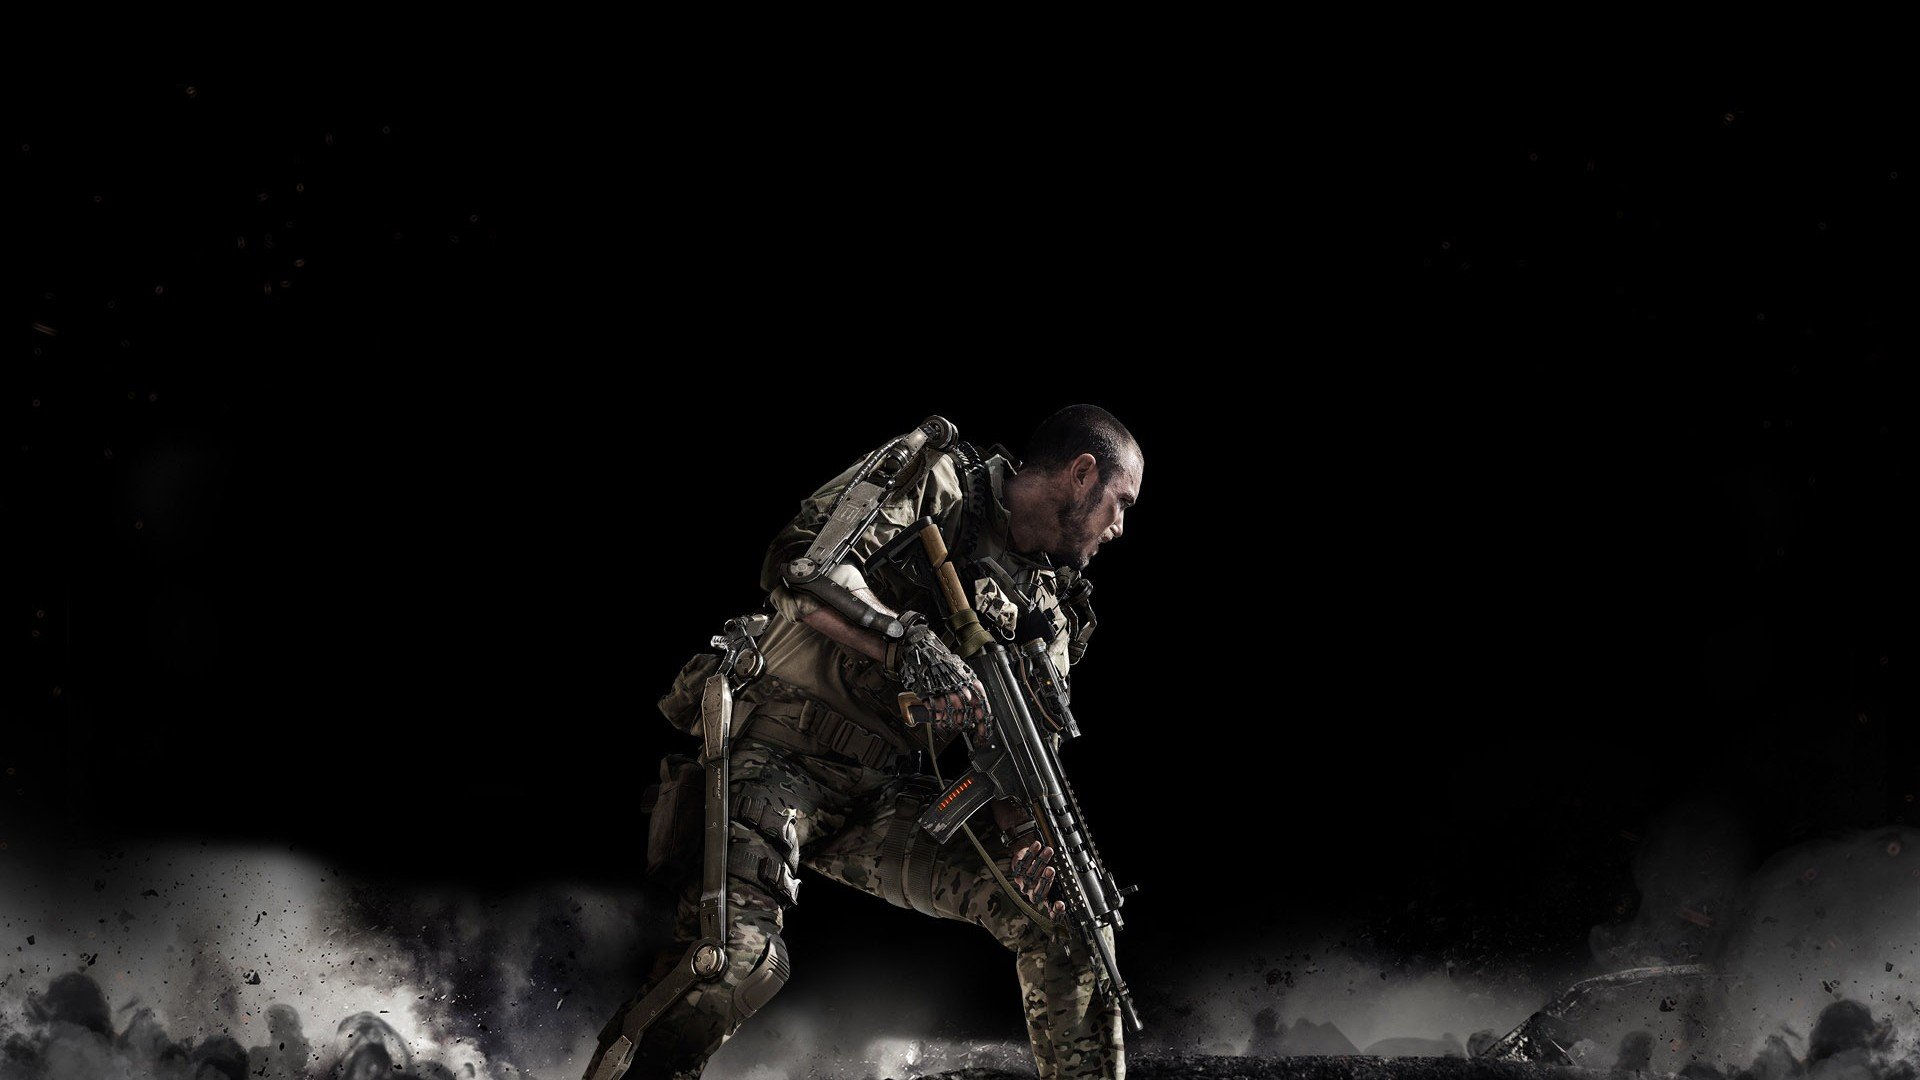 cALL OF DUTY Advanced Warfare fighting sci-fi shooter tactical military warrior futuristic cod ...